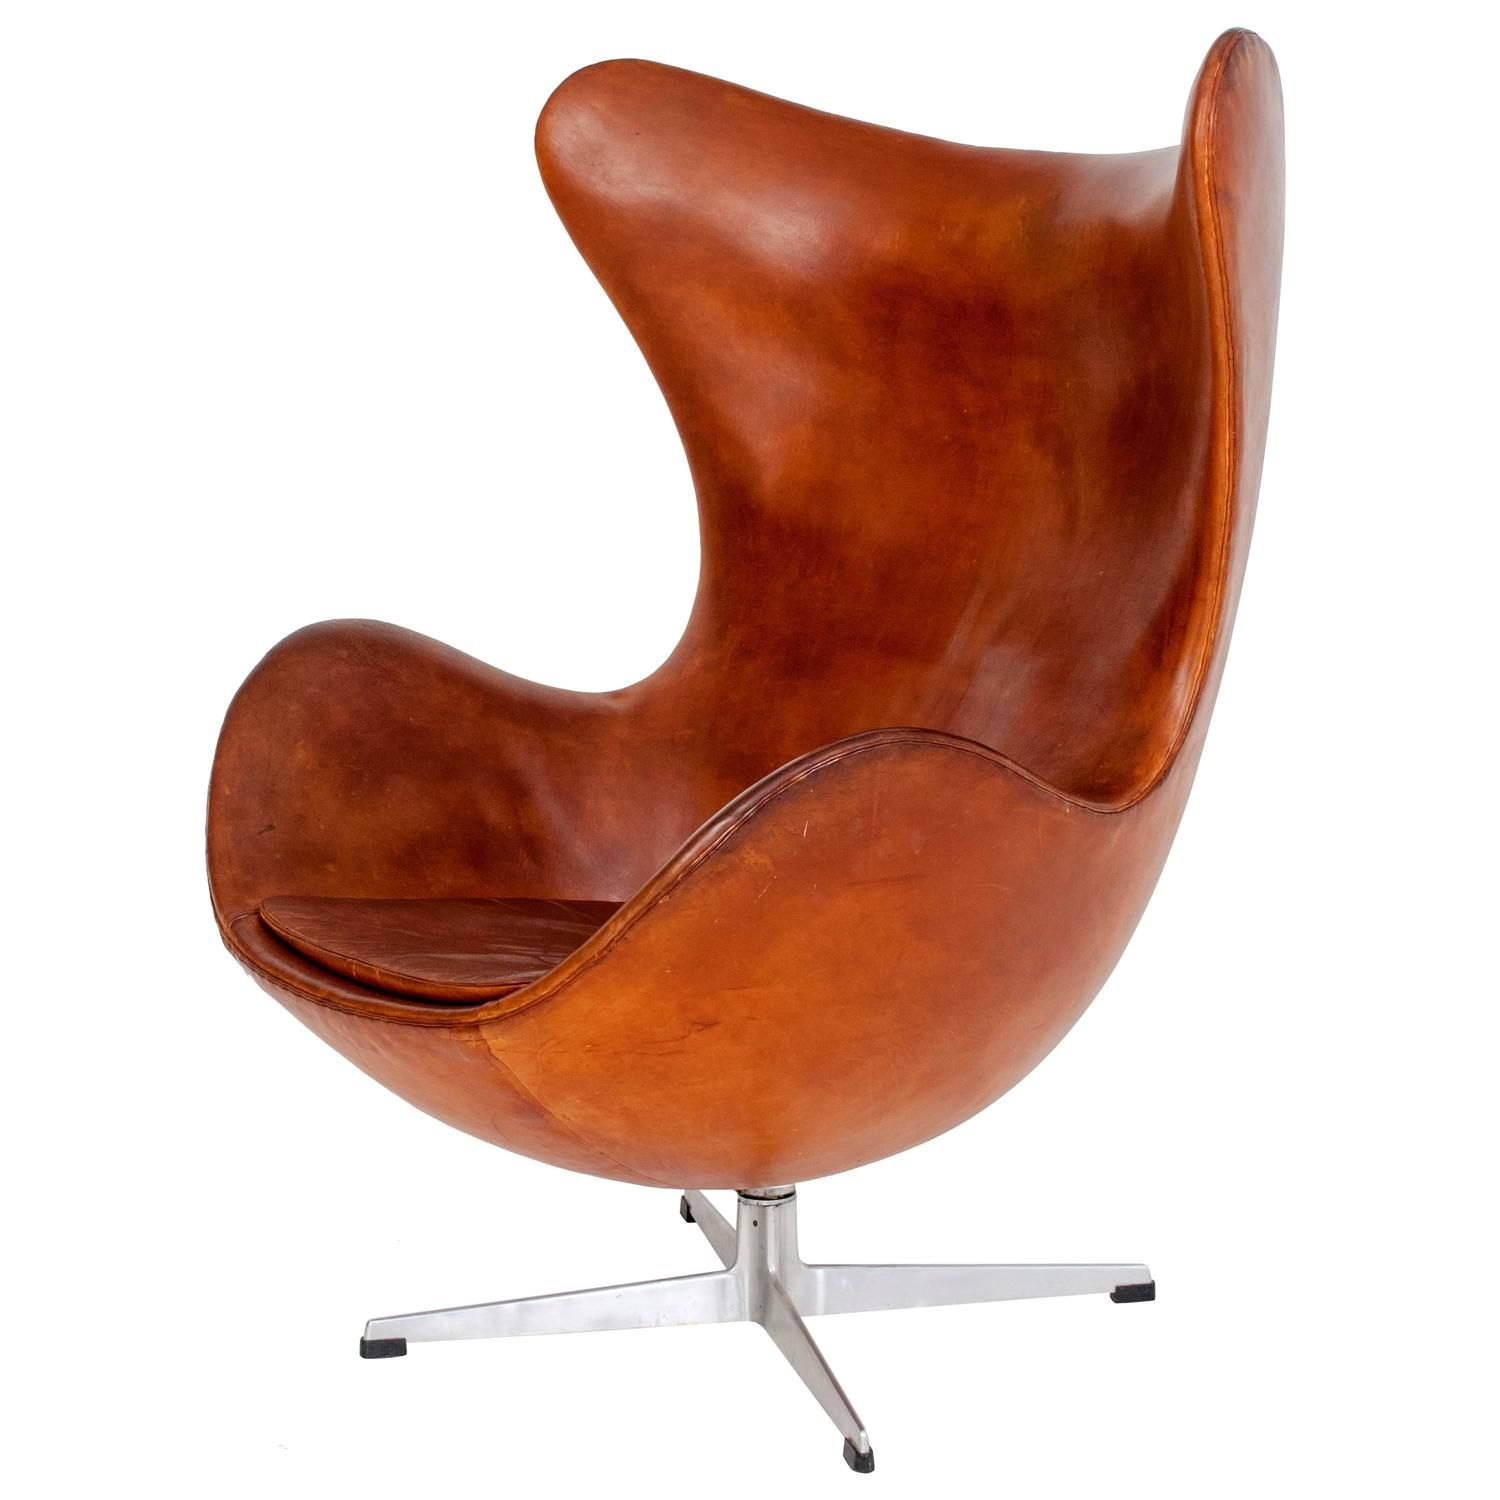 Arne Jacobsen Egg Chair From a unique collection of